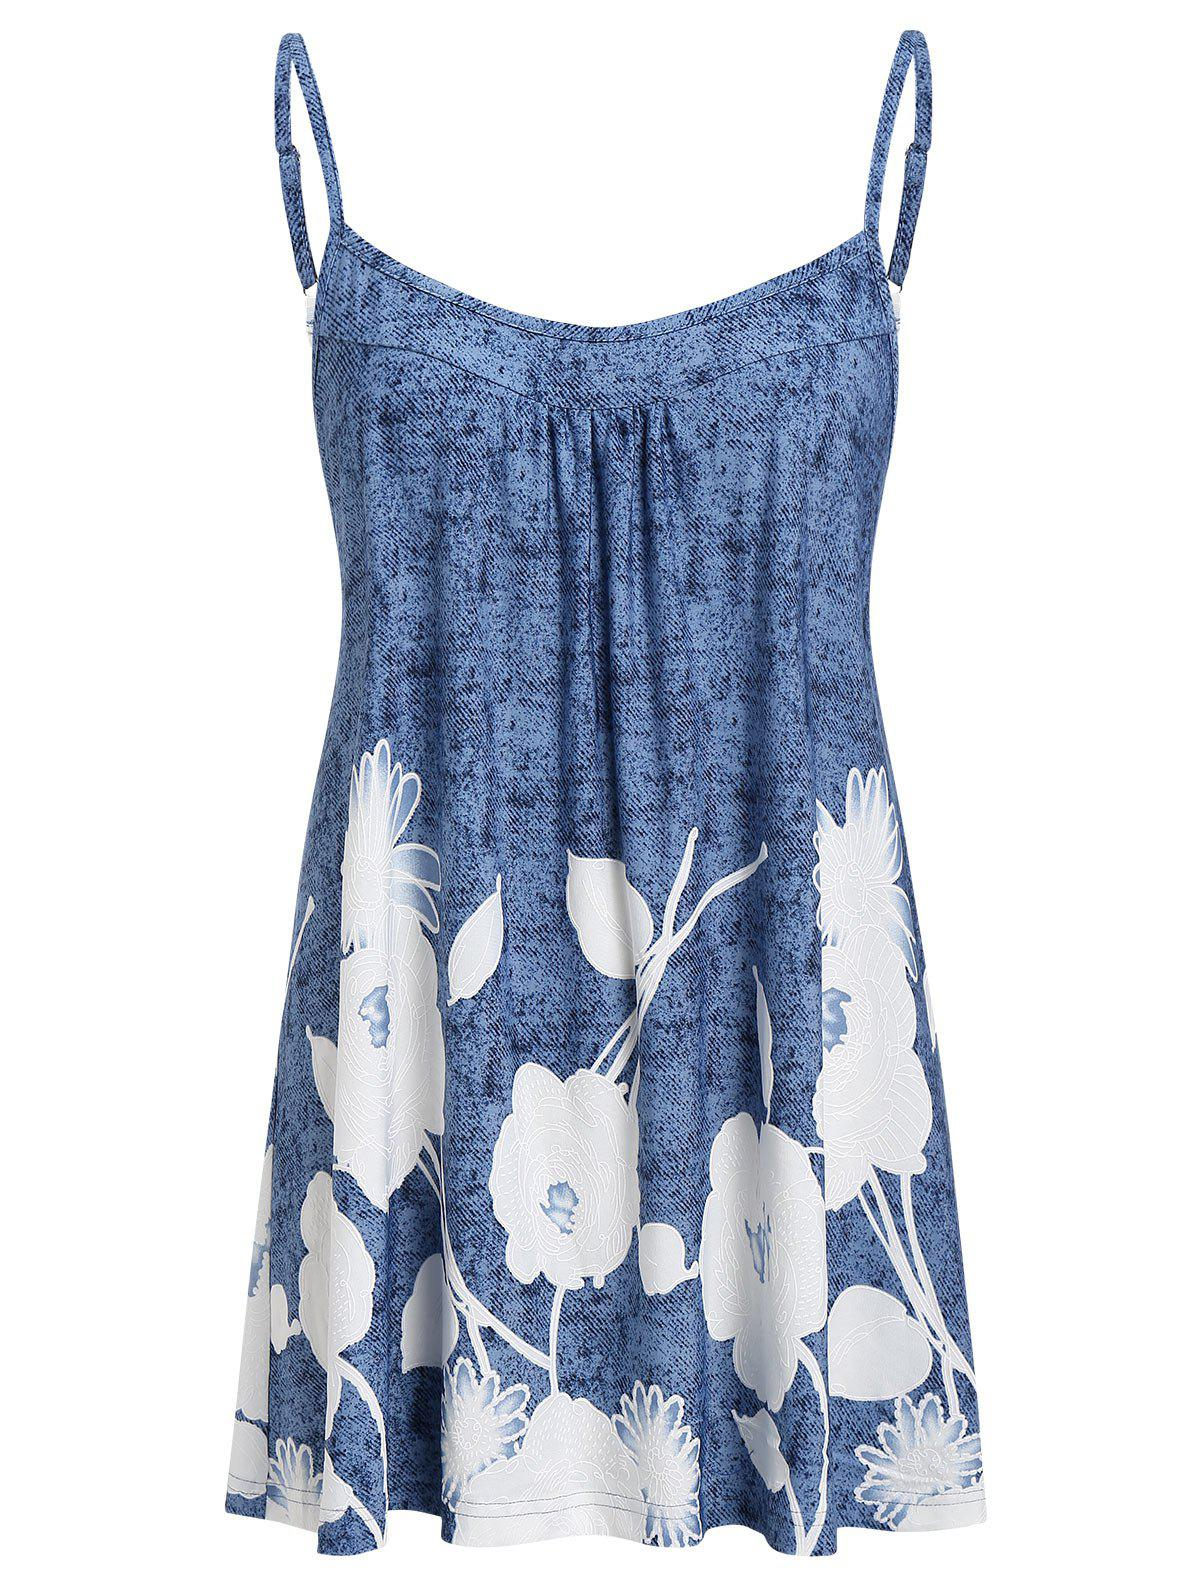 Plus Size Printed Flare Cami Tank Top - BLUE KOI 1X